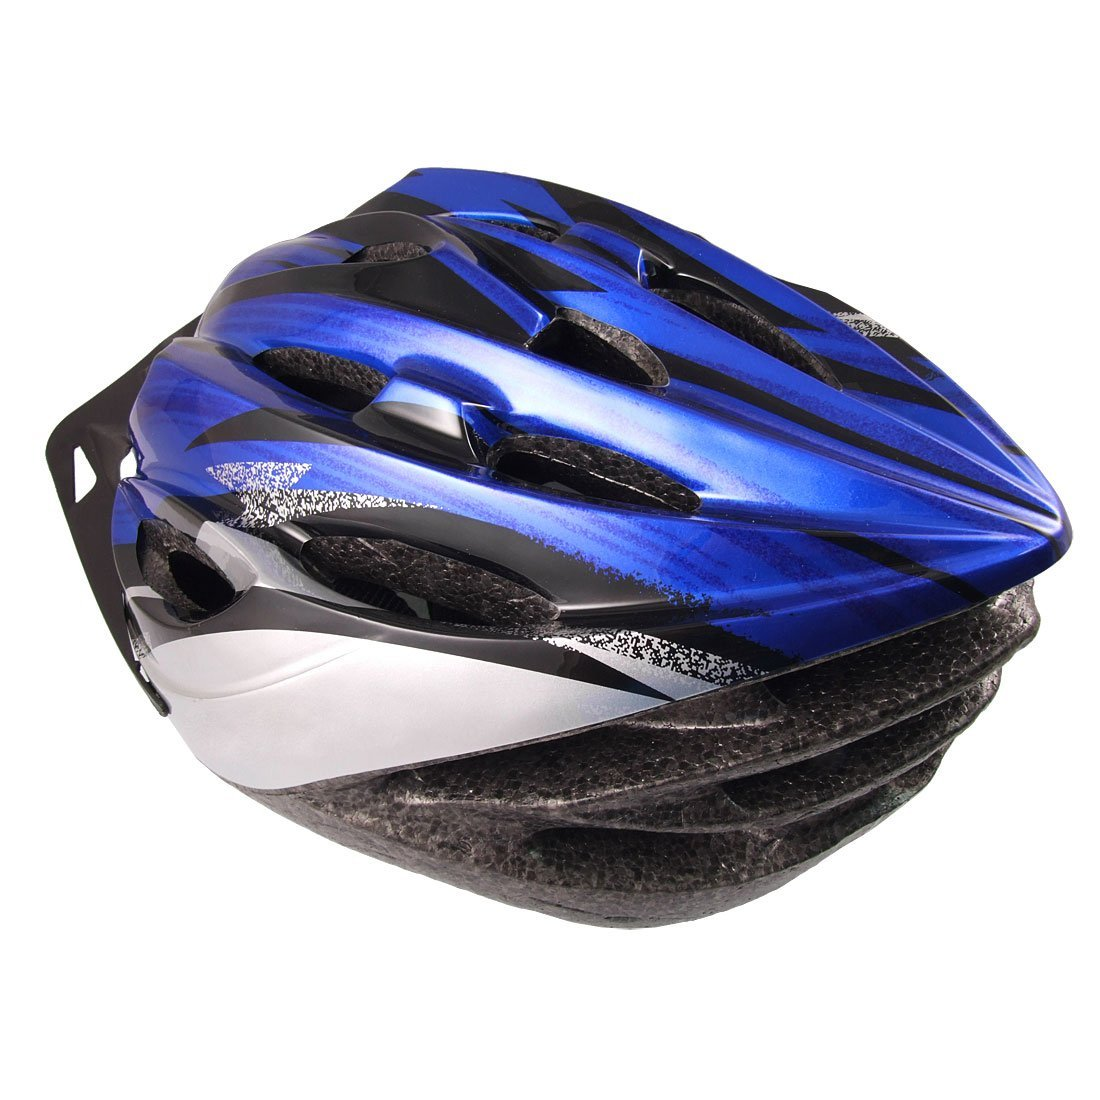 Blue Como Bicycle Helmets